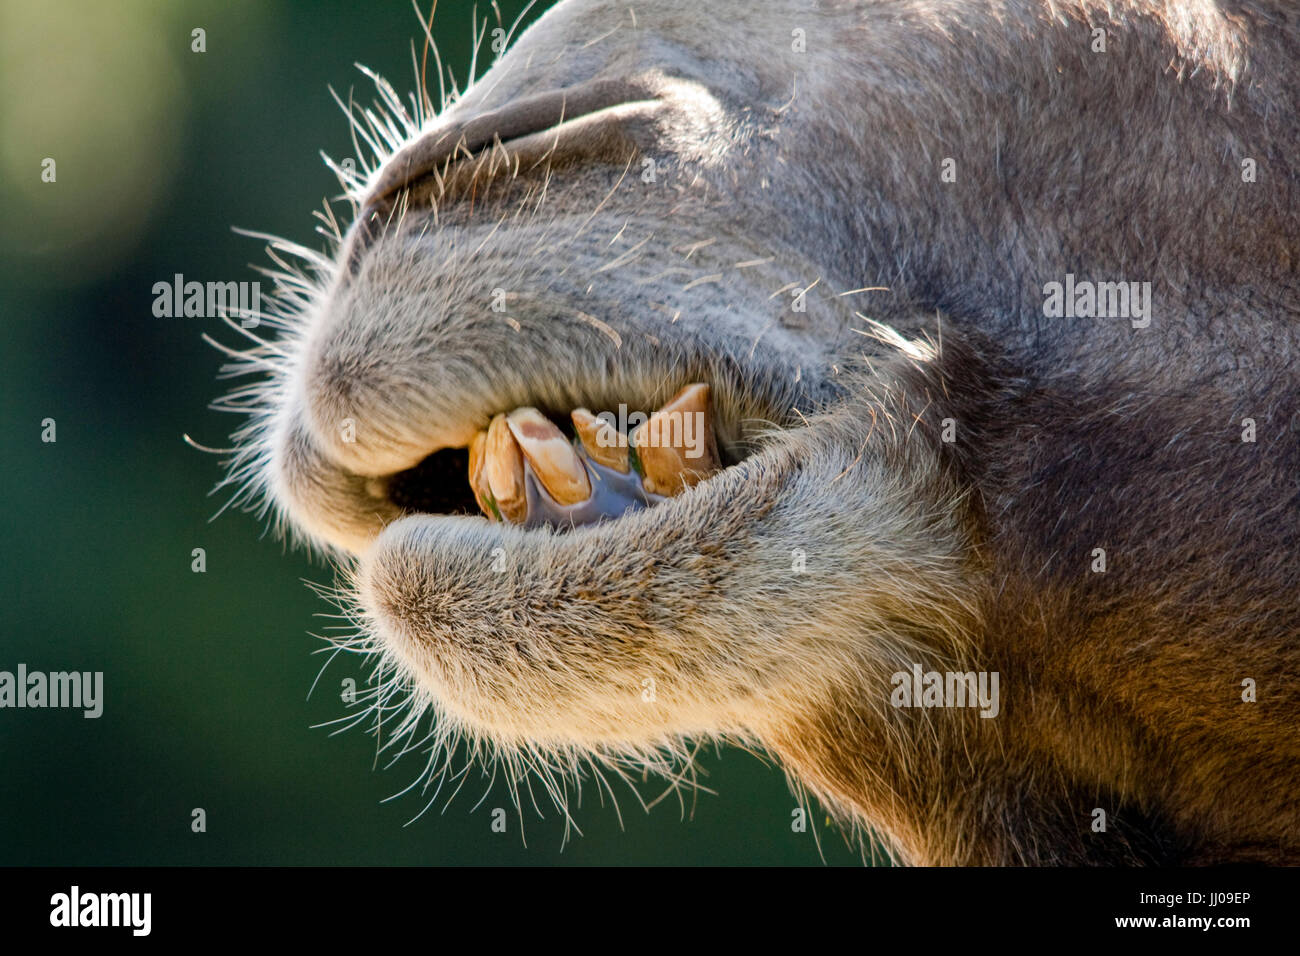 Teeth camel teeth close up showing uneven staggared stained distorted chipped worn unsightly sloping protruding - Stock Image